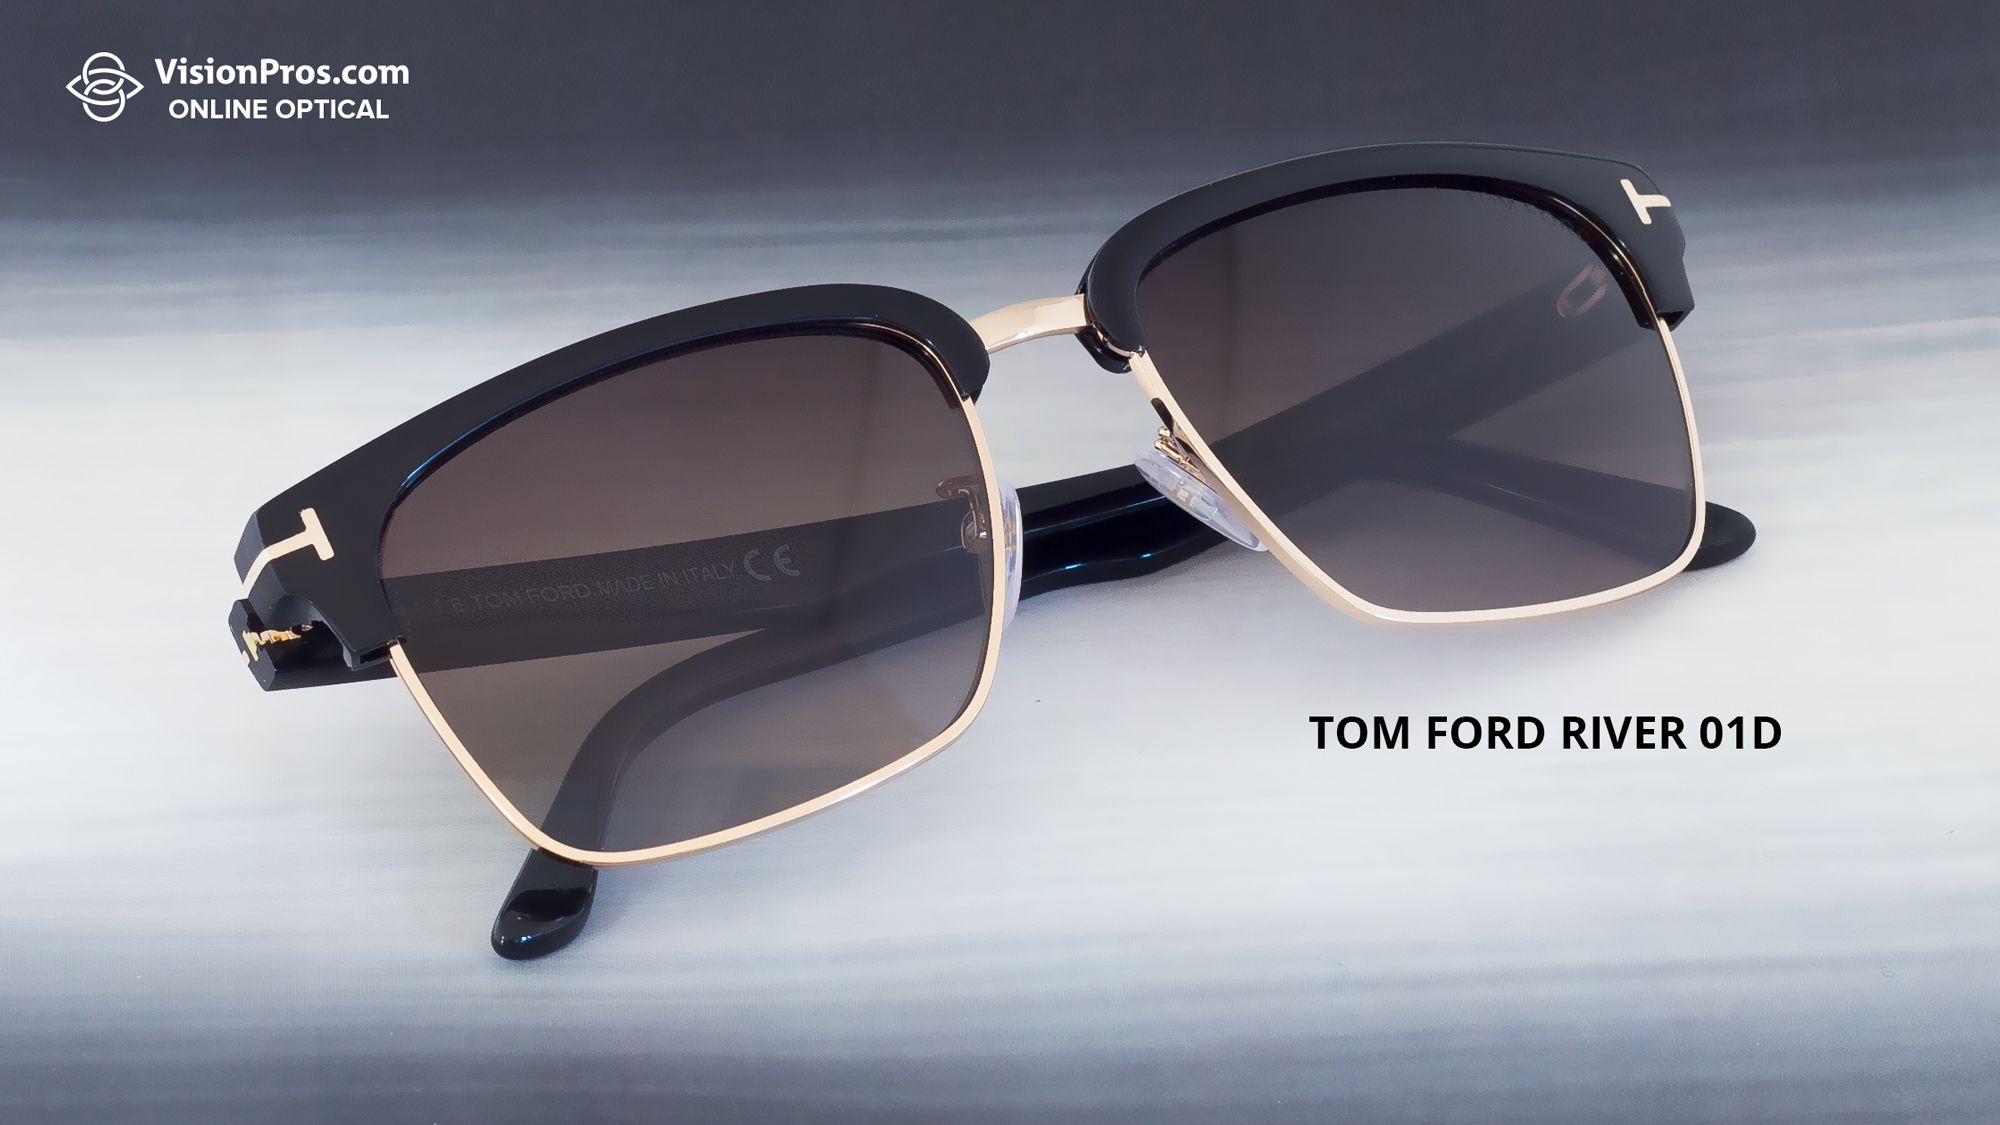 38a1a39f18 Make an eyewear statement with a stunning pair of Tom Ford sunglasses.